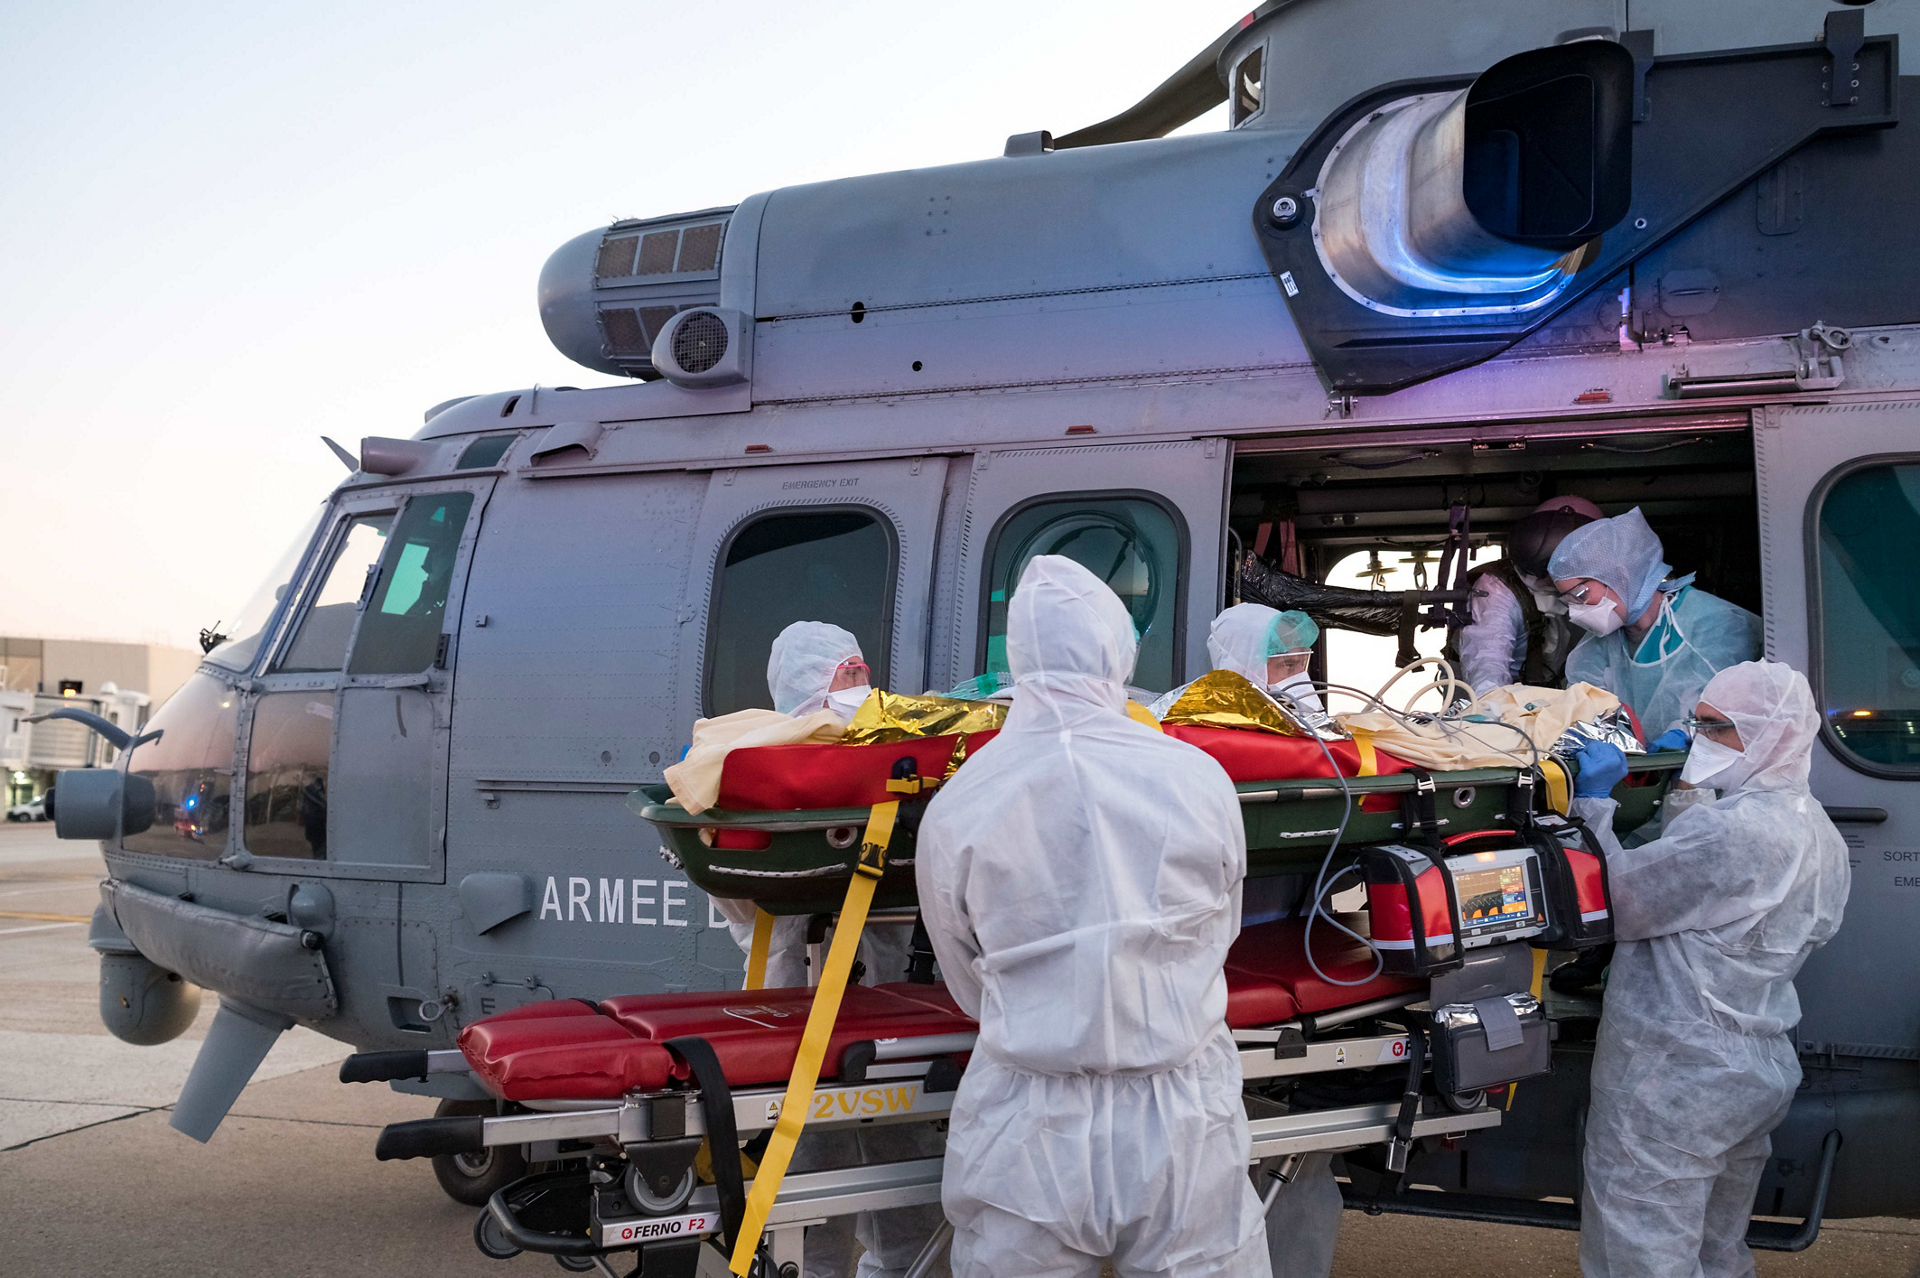 On April 1, 2020, two Caracals from BA 120 in Cazaux were used to transport Covid-19 patients from Ile-de-France.